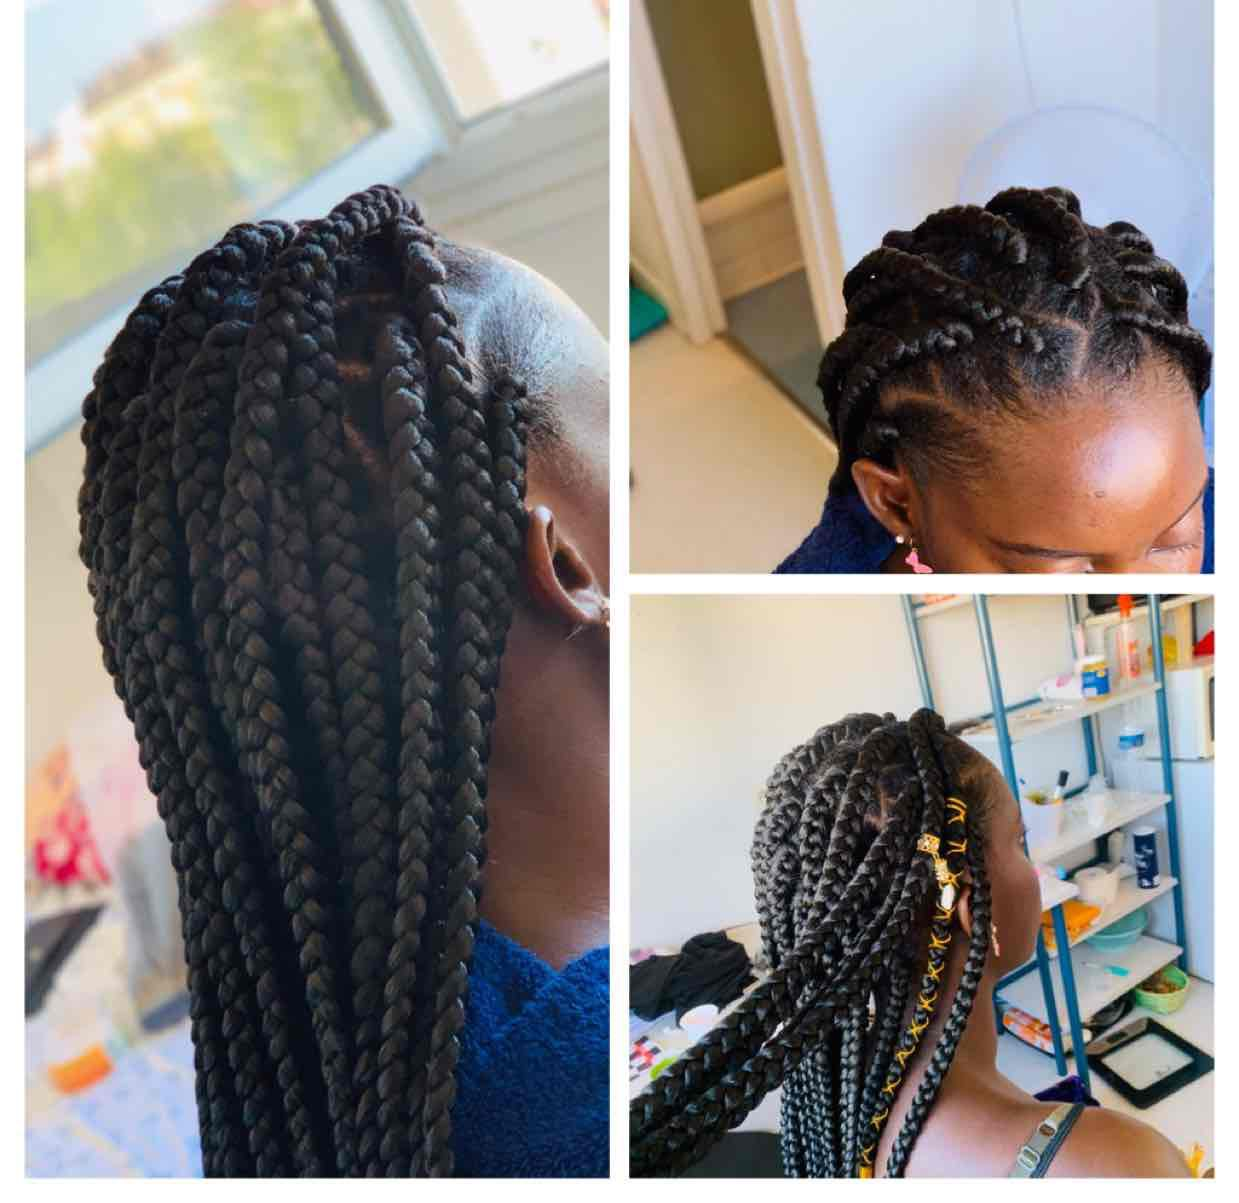 salon de coiffure afro tresse tresses box braids crochet braids vanilles tissages paris 75 77 78 91 92 93 94 95 GJRQQVOQ